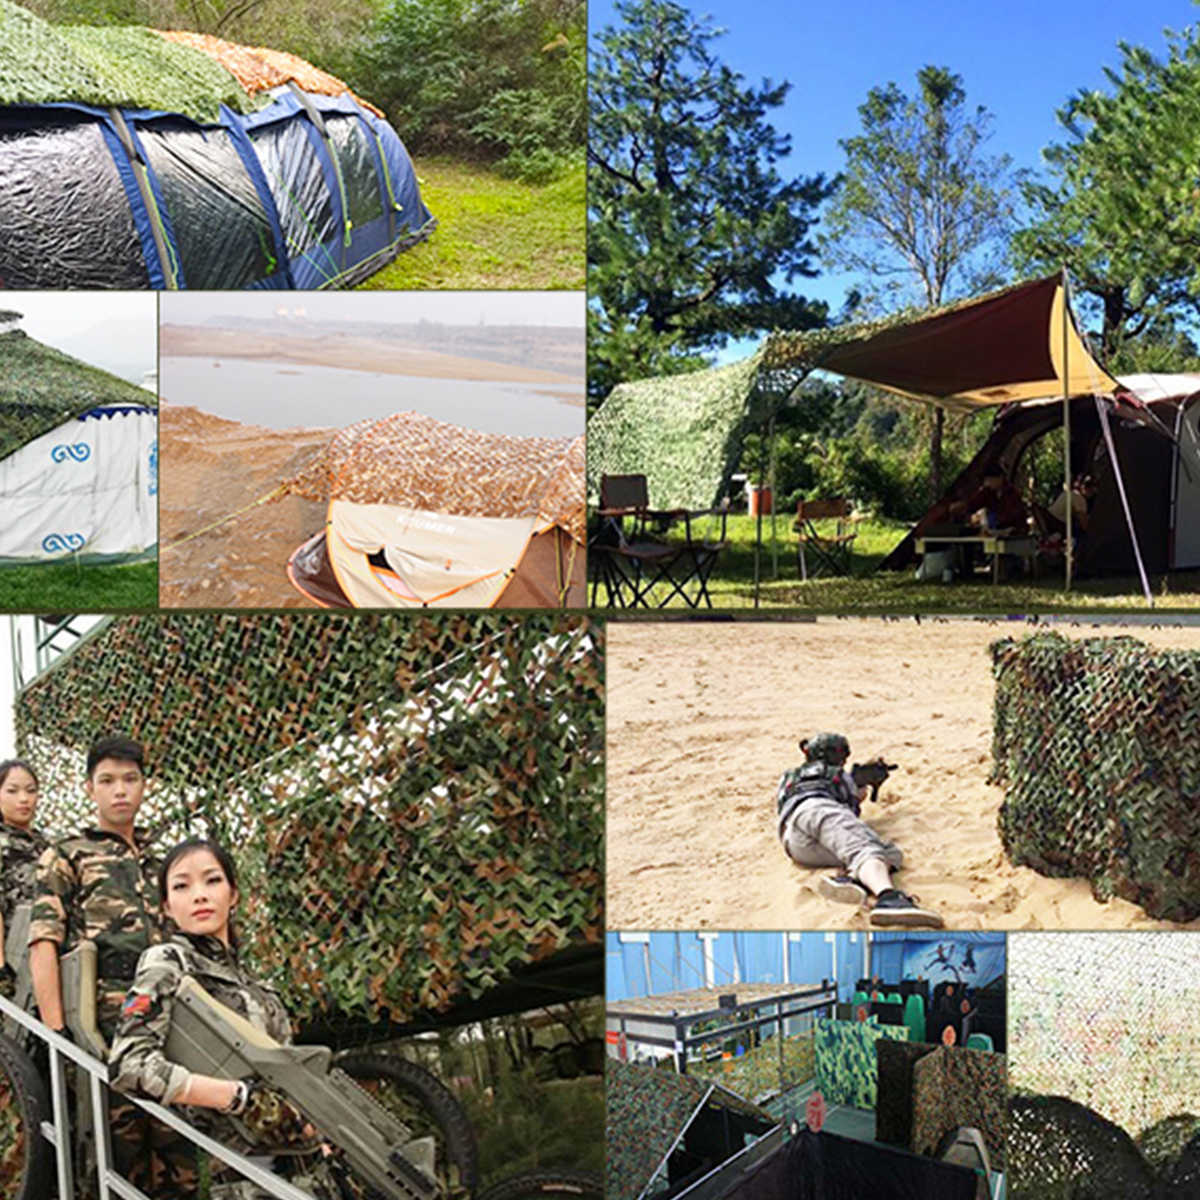 2x2 2x3 2x4 2x5 2x6 2x7 Hunting Military Camouflage Nets Woodland Army Camo netting Camping Sun ShelterTent Shade sun shelter